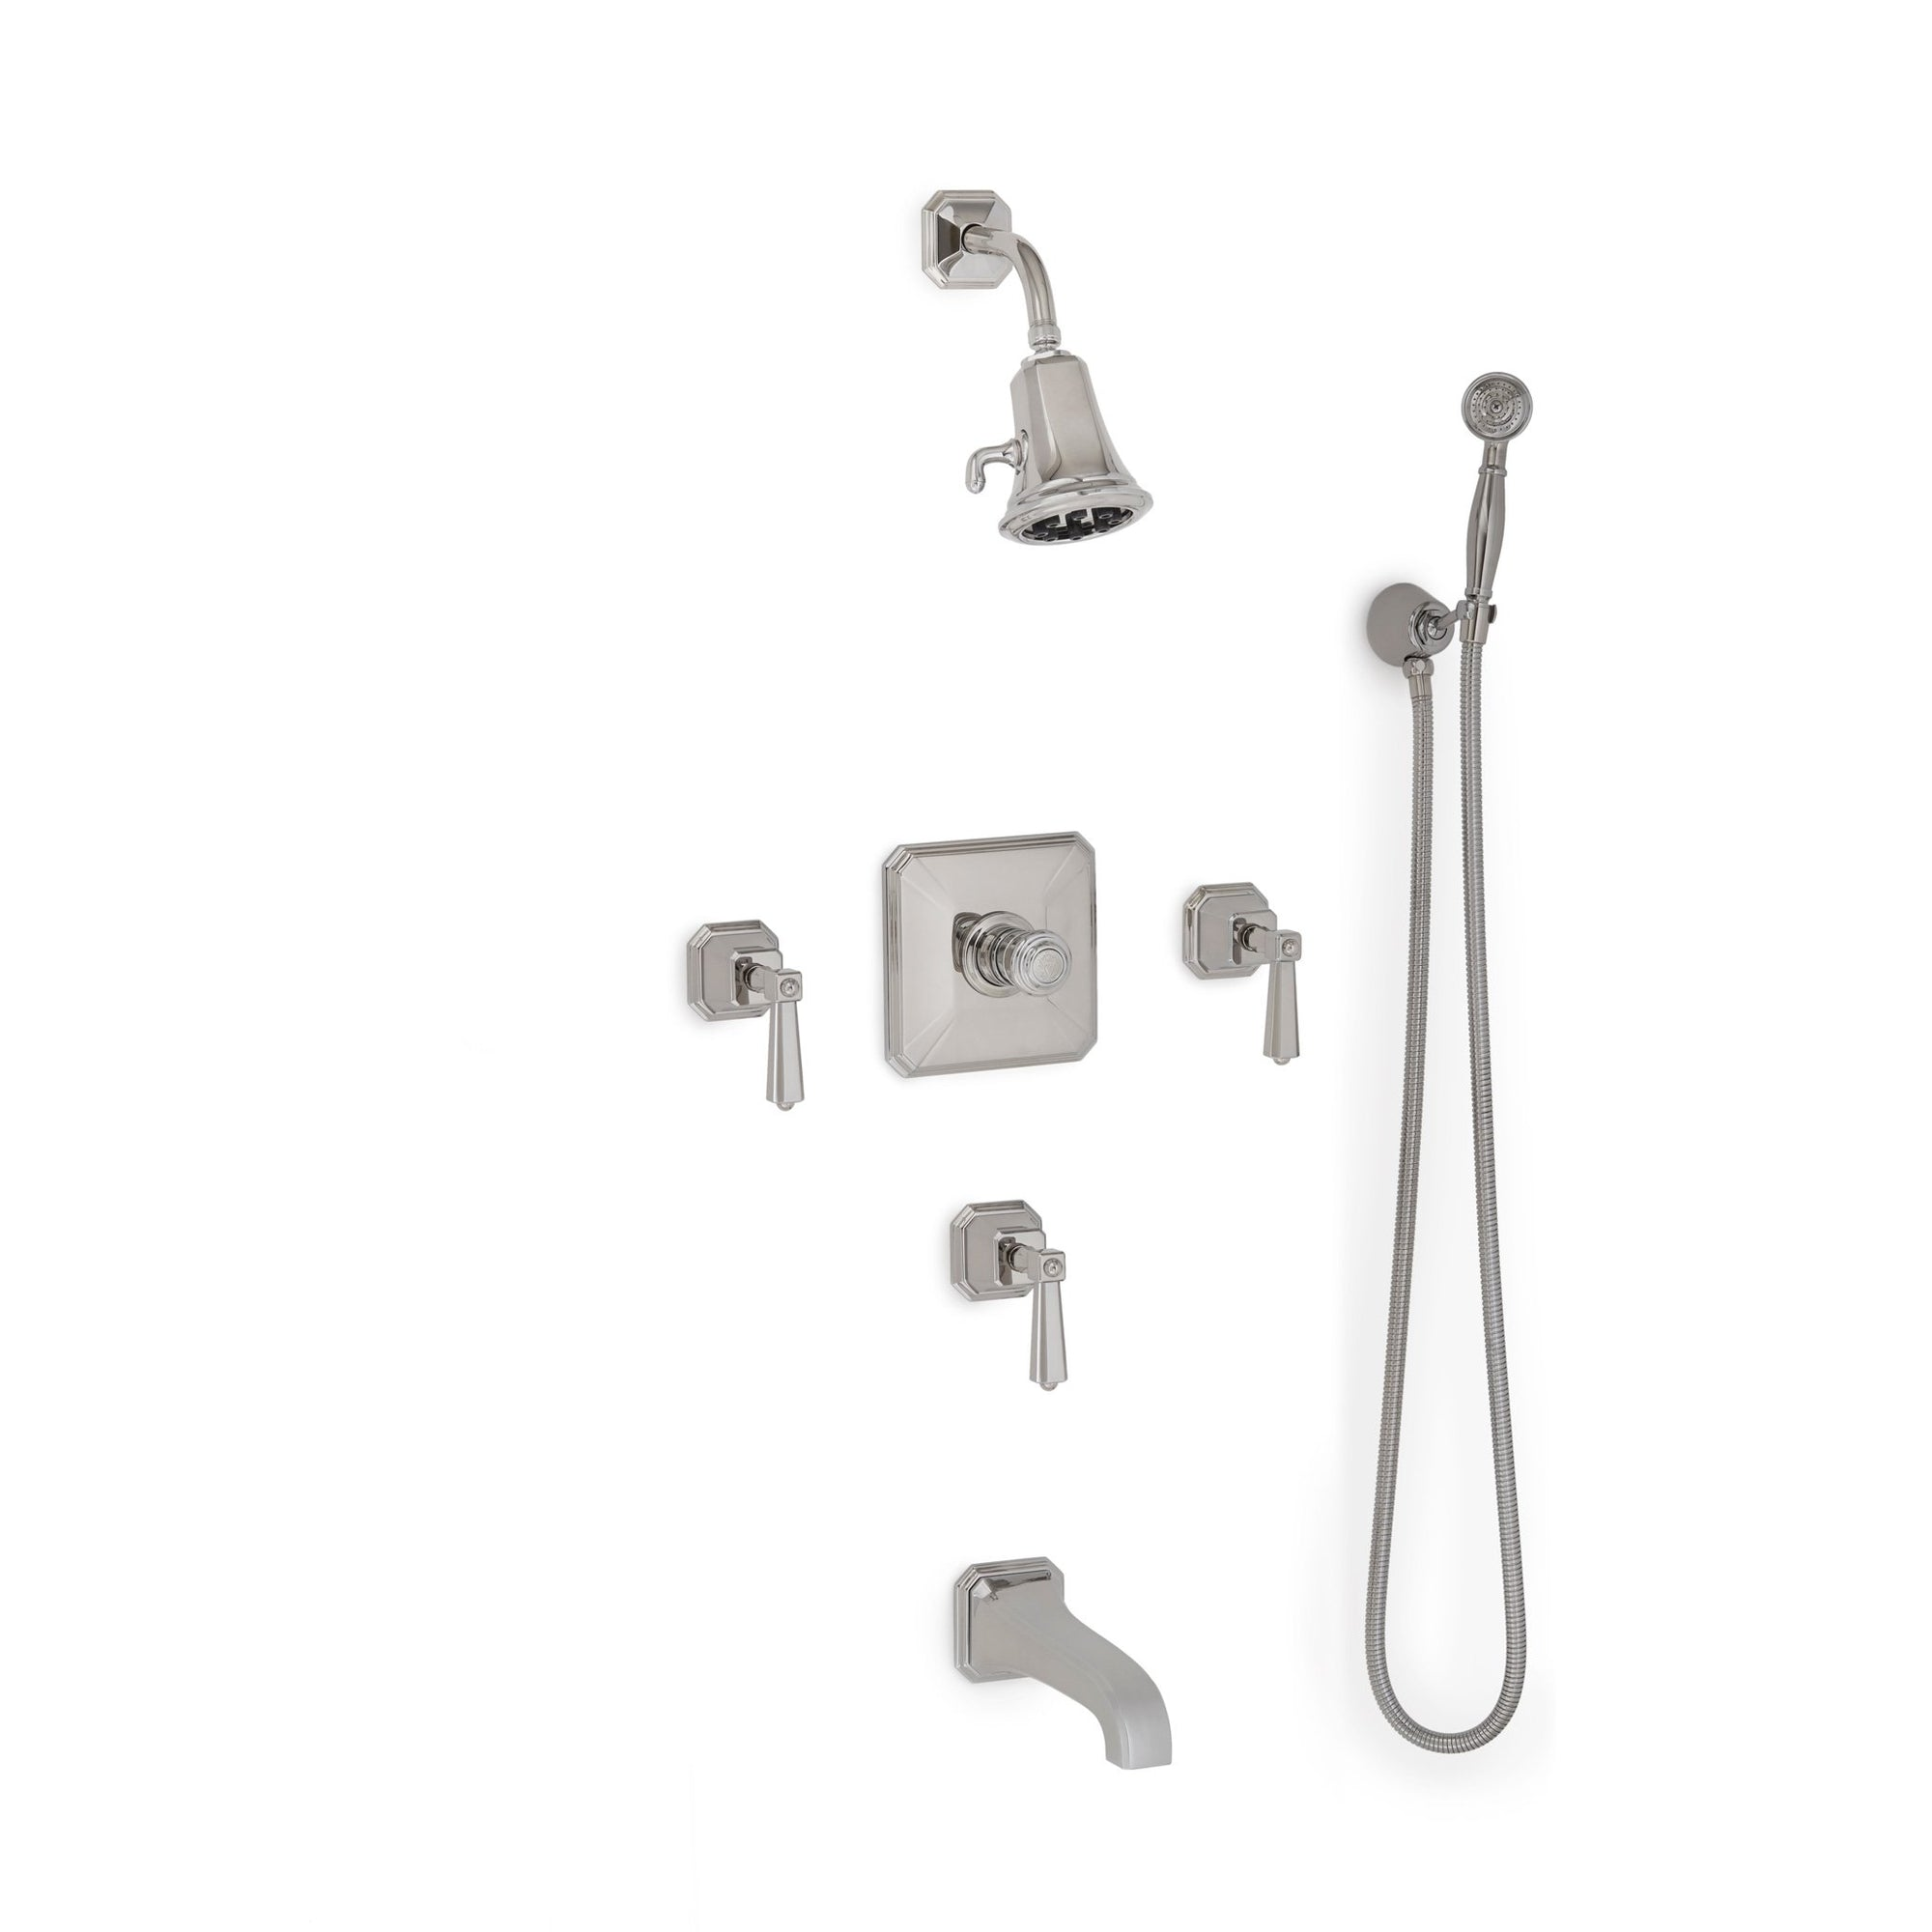 Sherle Wagner International Harrison Lever High Flow Thermostatic Shower and Tub System in Polished Chrome metal finish